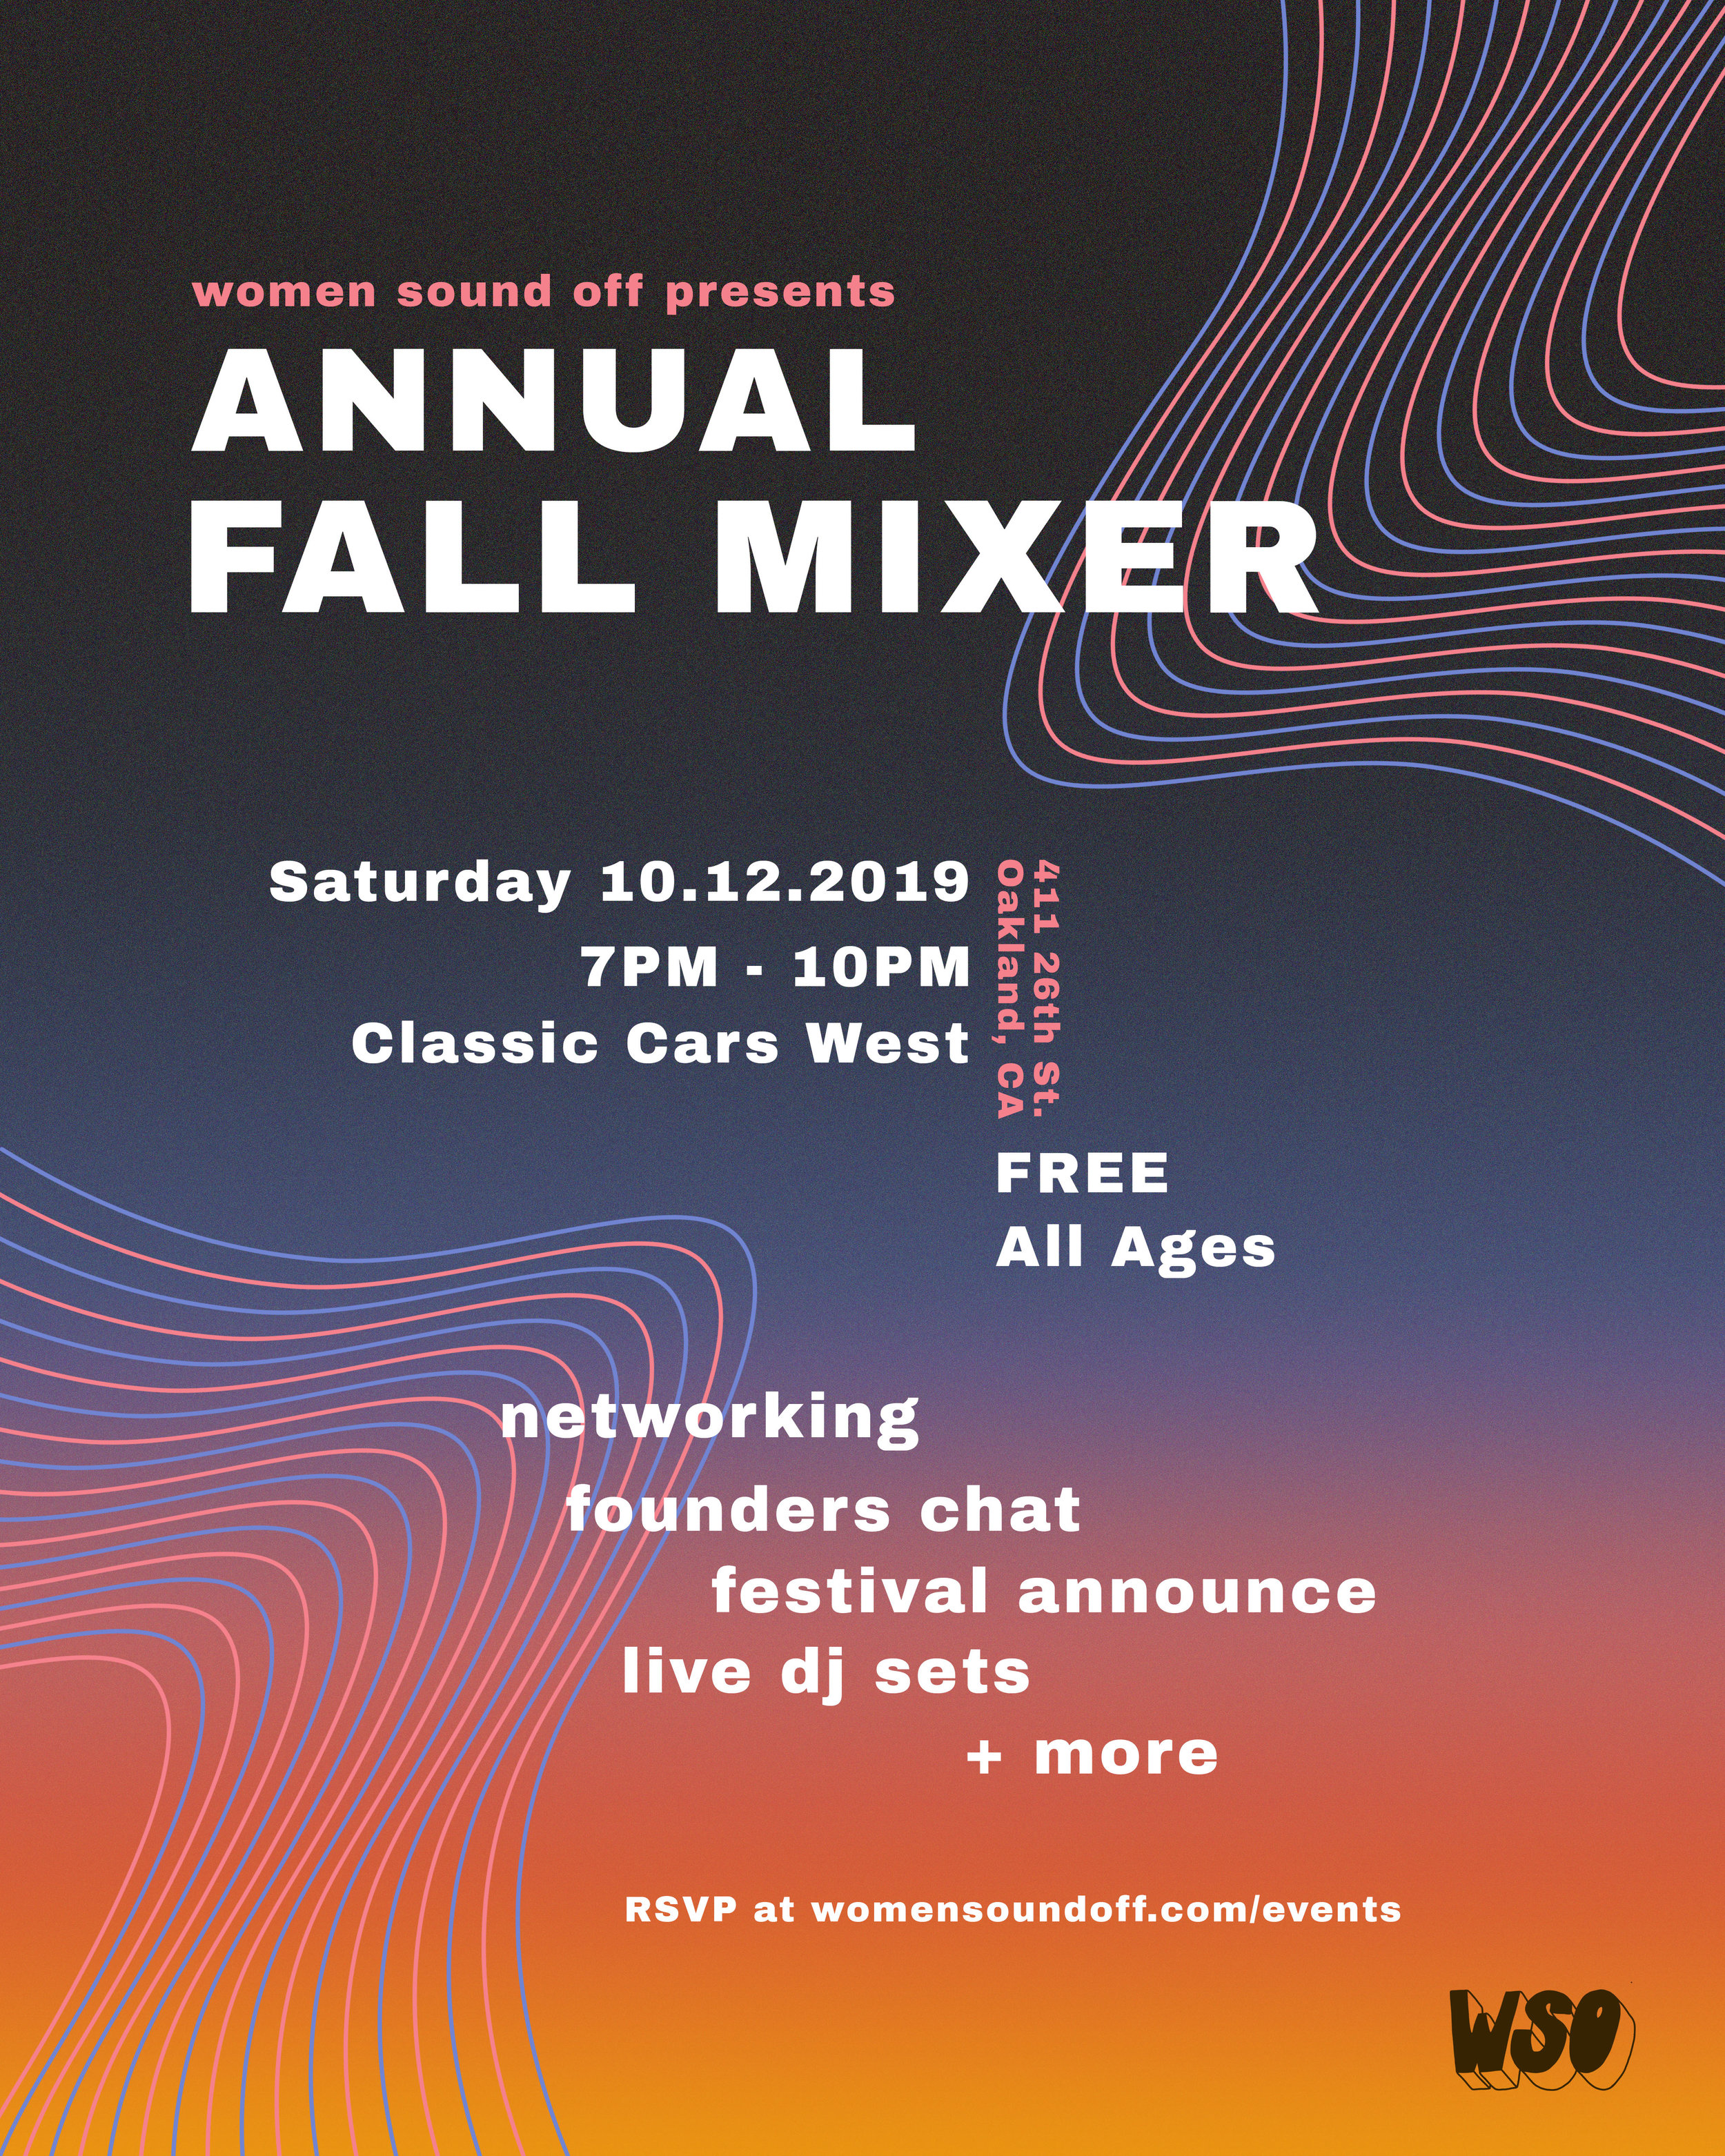 wso-fall-mixer-v3.jpg